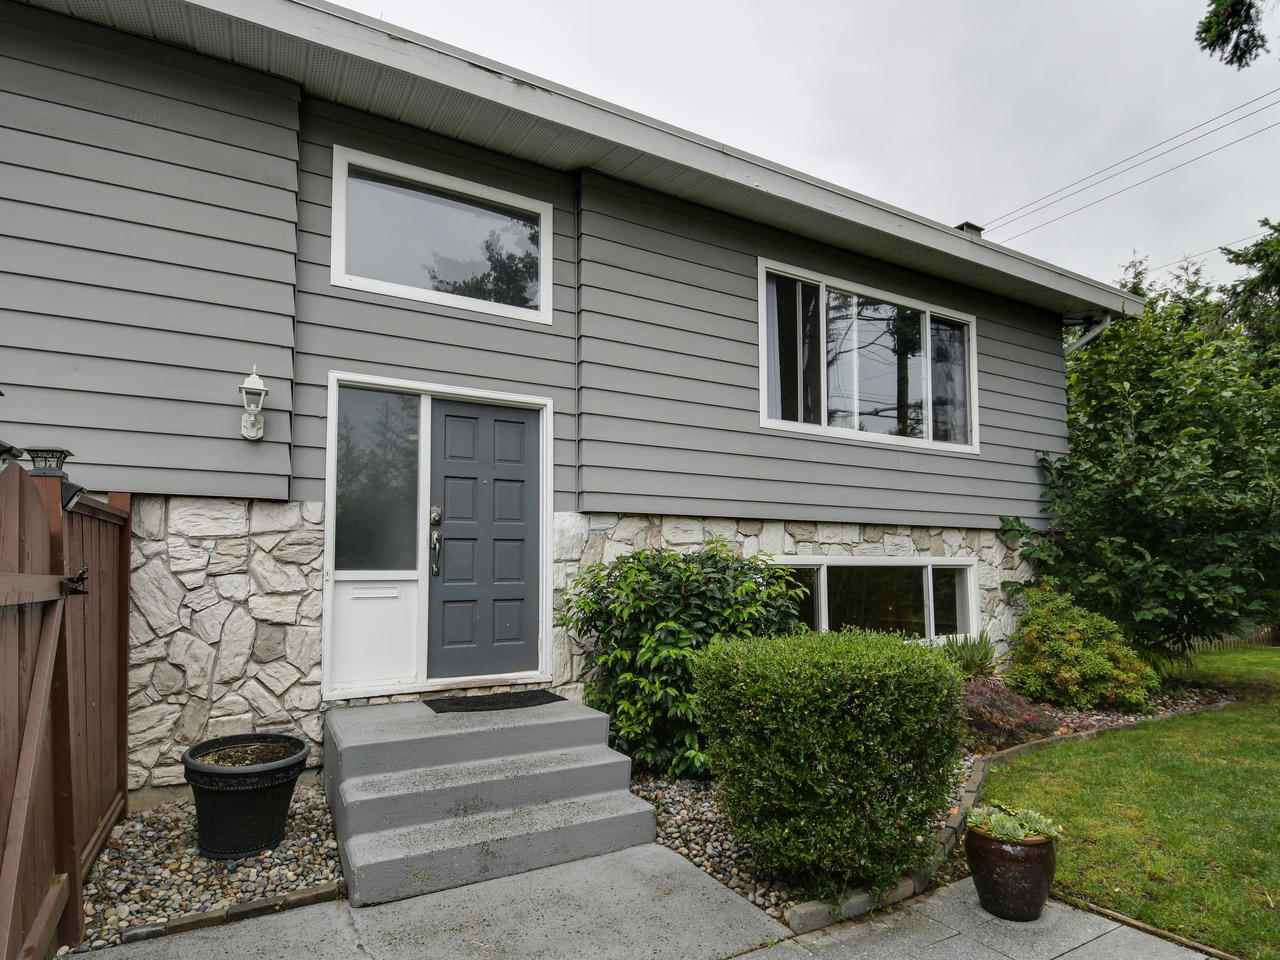 START THE CAR-INVESTOR ALERT! Excellent holding OR Investment property in White Rock! Renovated in 2012 this 2 storey basement home offers many options. Upper floor is 2 good sized bedrooms, main bath features new vanity, dbl sinks & slate flooring. The kitchen is fantastic for entertaining with a HUGE wrap around island, newer appliances, built in wine rack, lots of pull out drawers & storage. Full size dining room open to cozy living area w/wood fireplace. Above ground Lower floor also has a kitchen, built in computer desk, spacious living room, bdrm & 4 pc bath, lots of windows for a bright & cheery 1 bdrm suite. Great outdoor space, front yard, side yard  & AWESOME private deck.